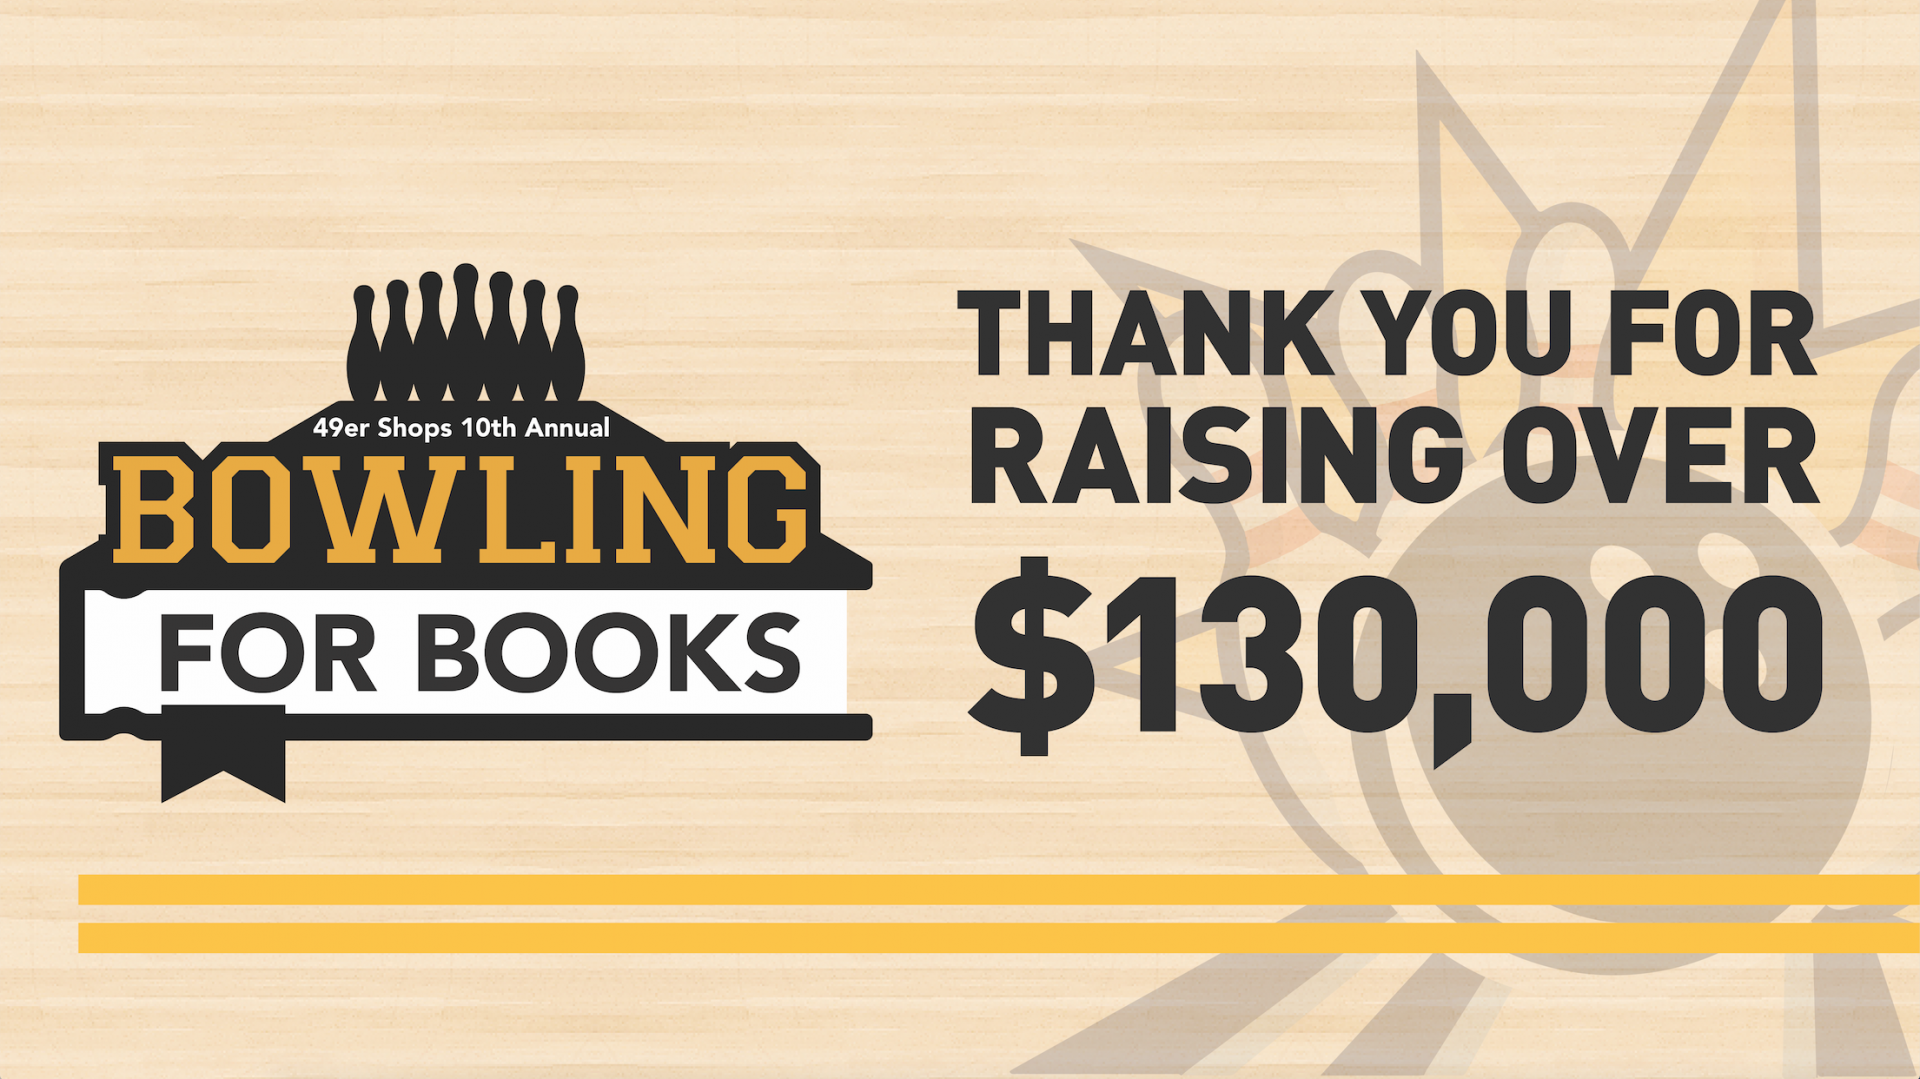 Thank you for helping us reach $130,000 for CSULb textbook scholarships